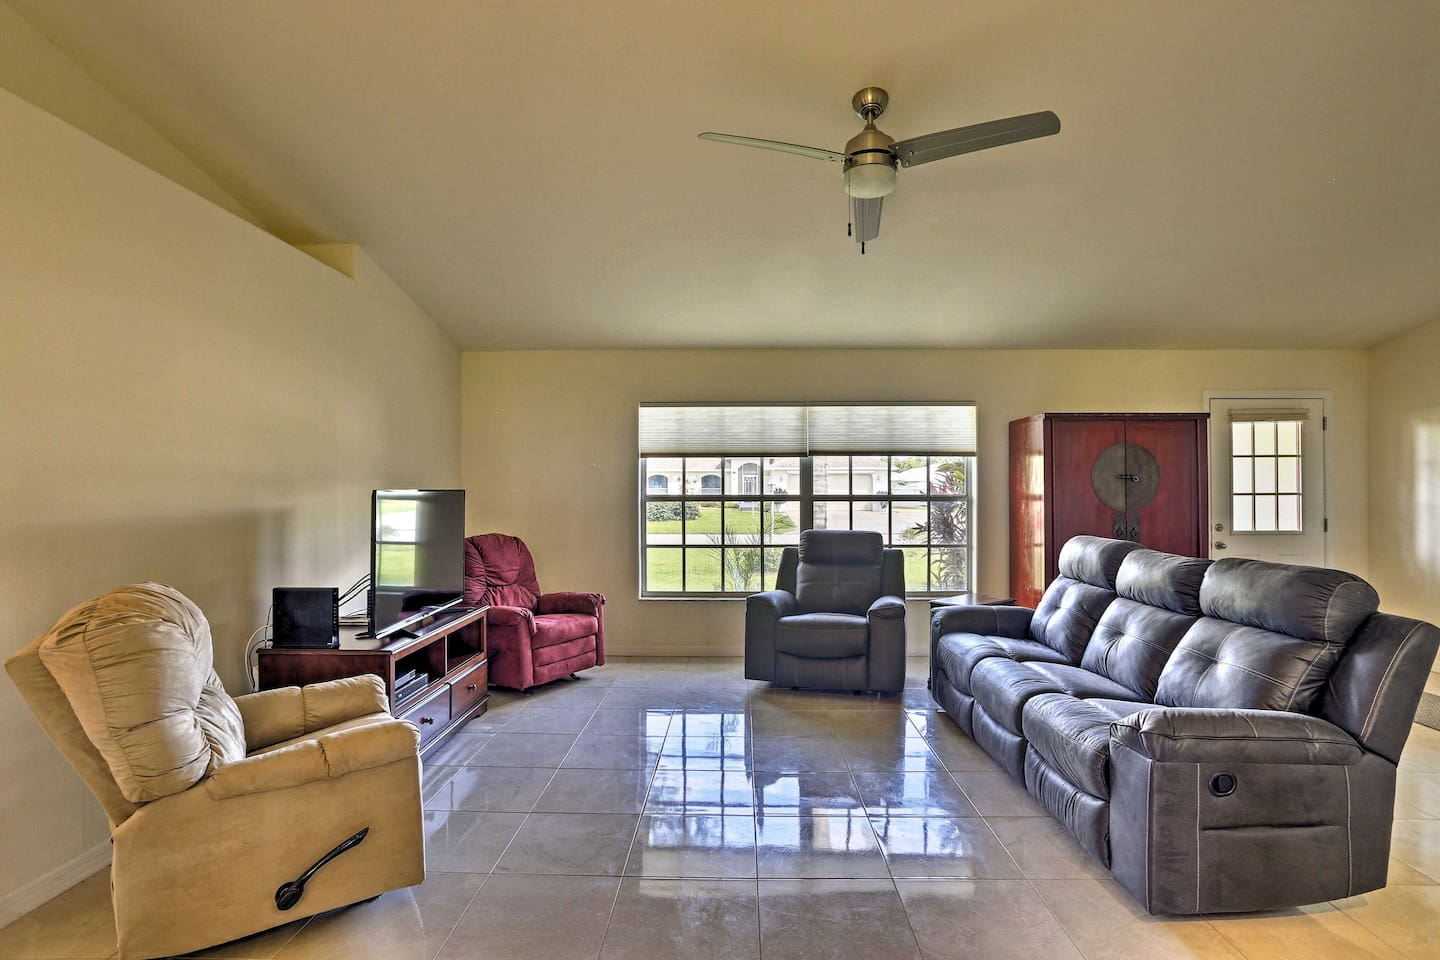 Book your 3-bed, 2-bath home-away-from-home in Sebring, Florida!